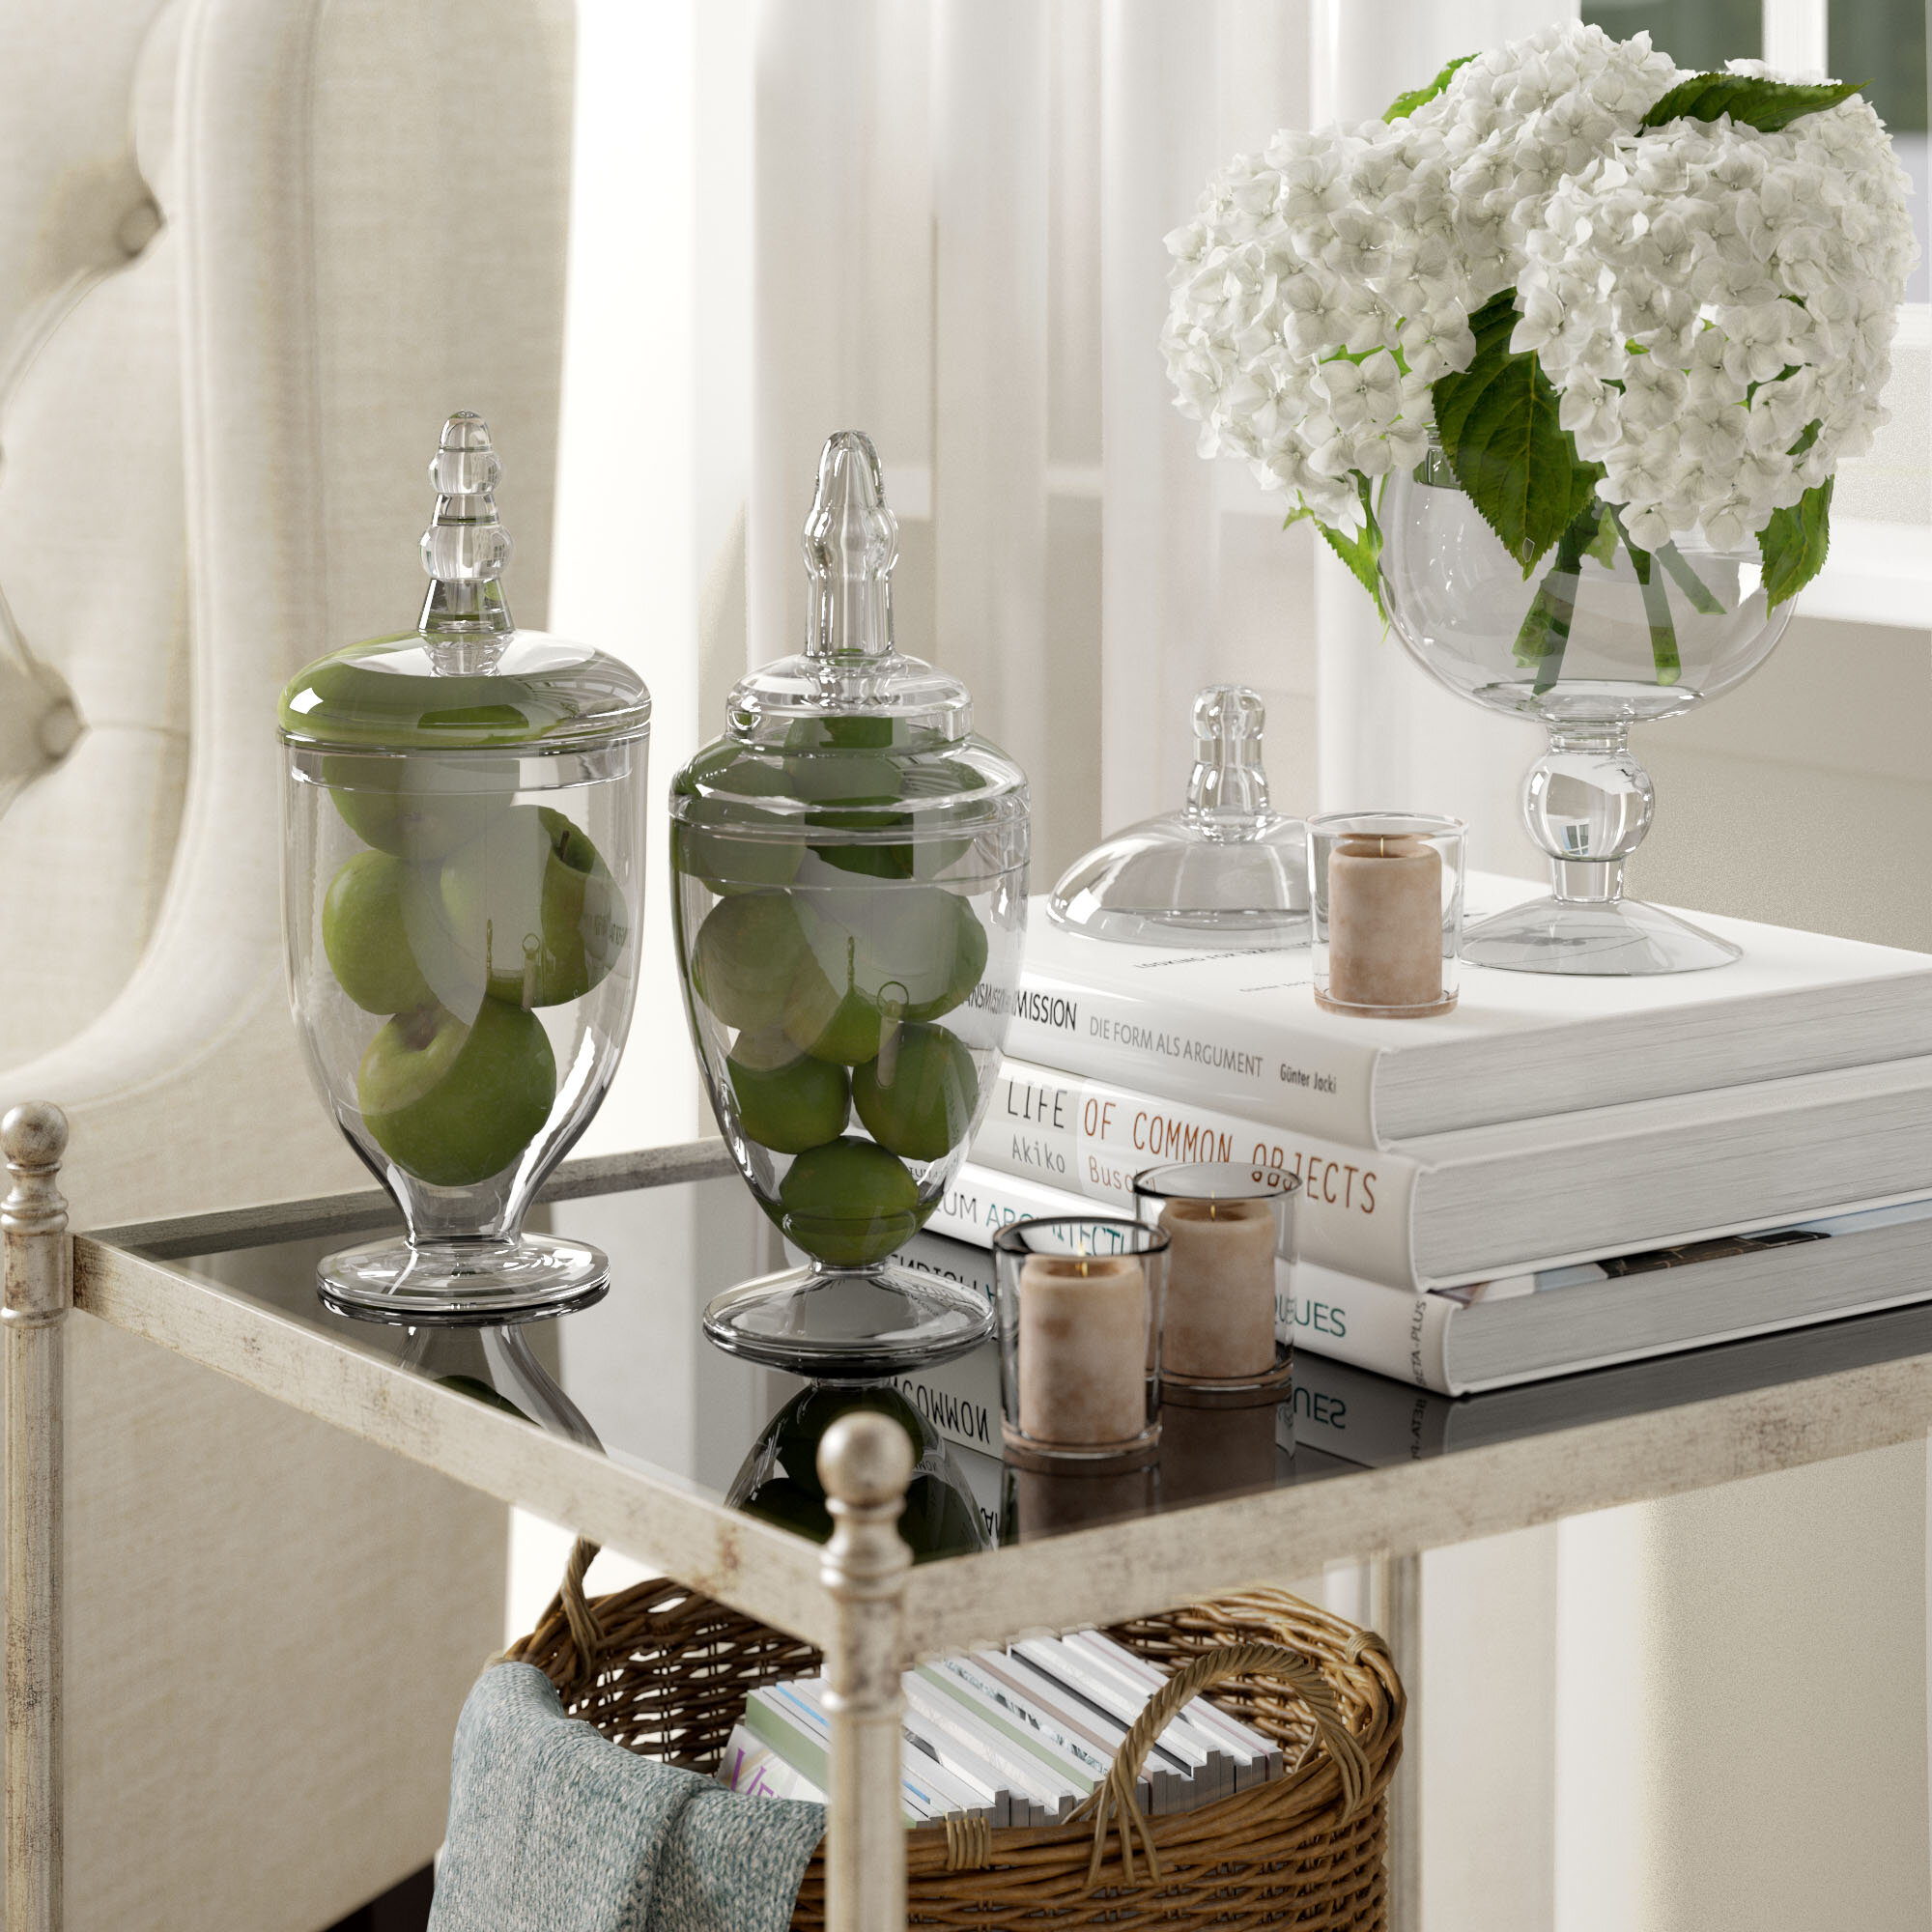 Mint Pantry Scotia 3 Piece Apothecary Jar Set & Reviews   Wayfair on kitchen border ideas, kitchen style ideas, kitchen white ideas, kitchen accent colors, kitchen art ideas, kitchen phone ideas, kitchen furniture ideas, different kitchen ideas, kitchen with red accents, kitchen decorating ideas, blue kitchen ideas, kitchen classic ideas, kitchen redo ideas, kitchen blue accent wall, kitchen color ideas, kitchen dining ideas, kitchen accessory ideas, kitchen pitch ideas, kitchen task lighting ideas, kitchen accessories ideas,